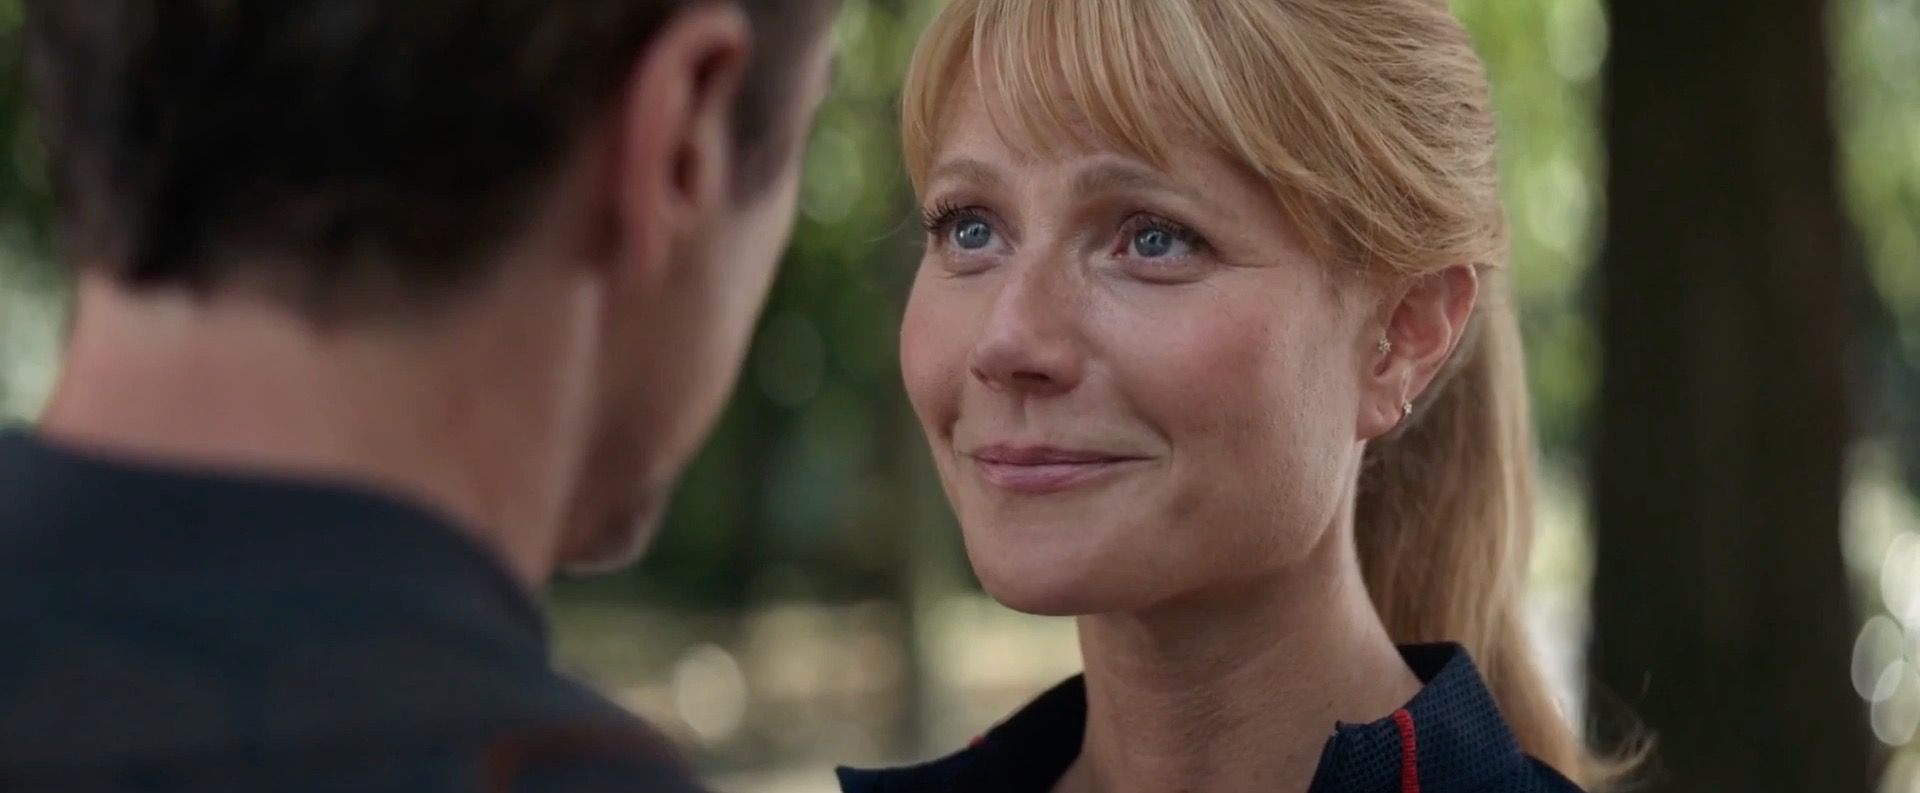 Avengers: Endgame's Gwyneth Paltrow reveals why she forgets which Marvel movies she's in